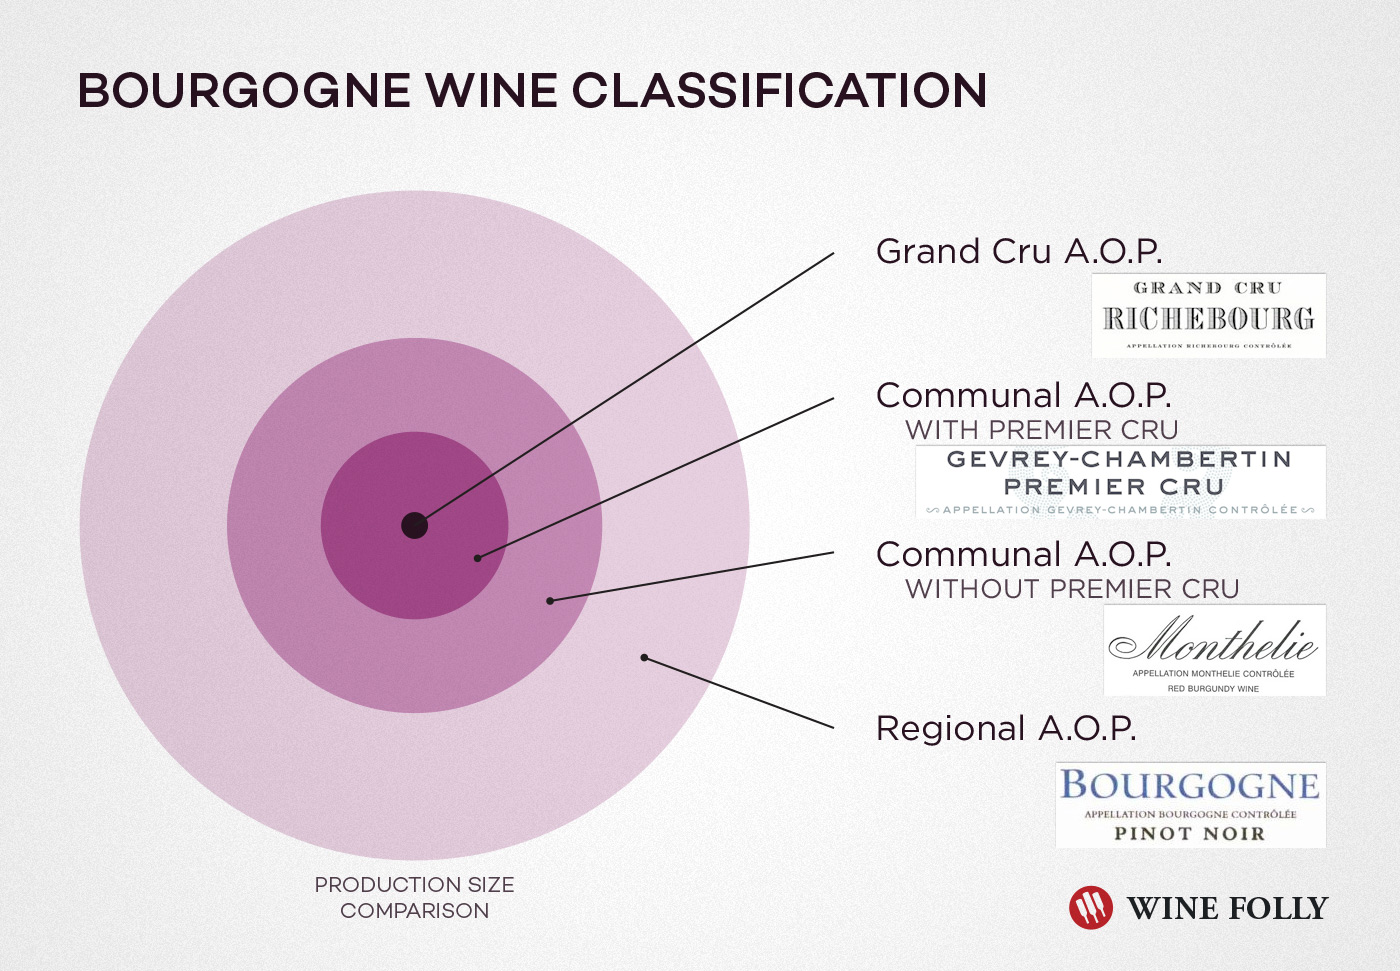 Learn more about Burgundy at  WineFolly.com .